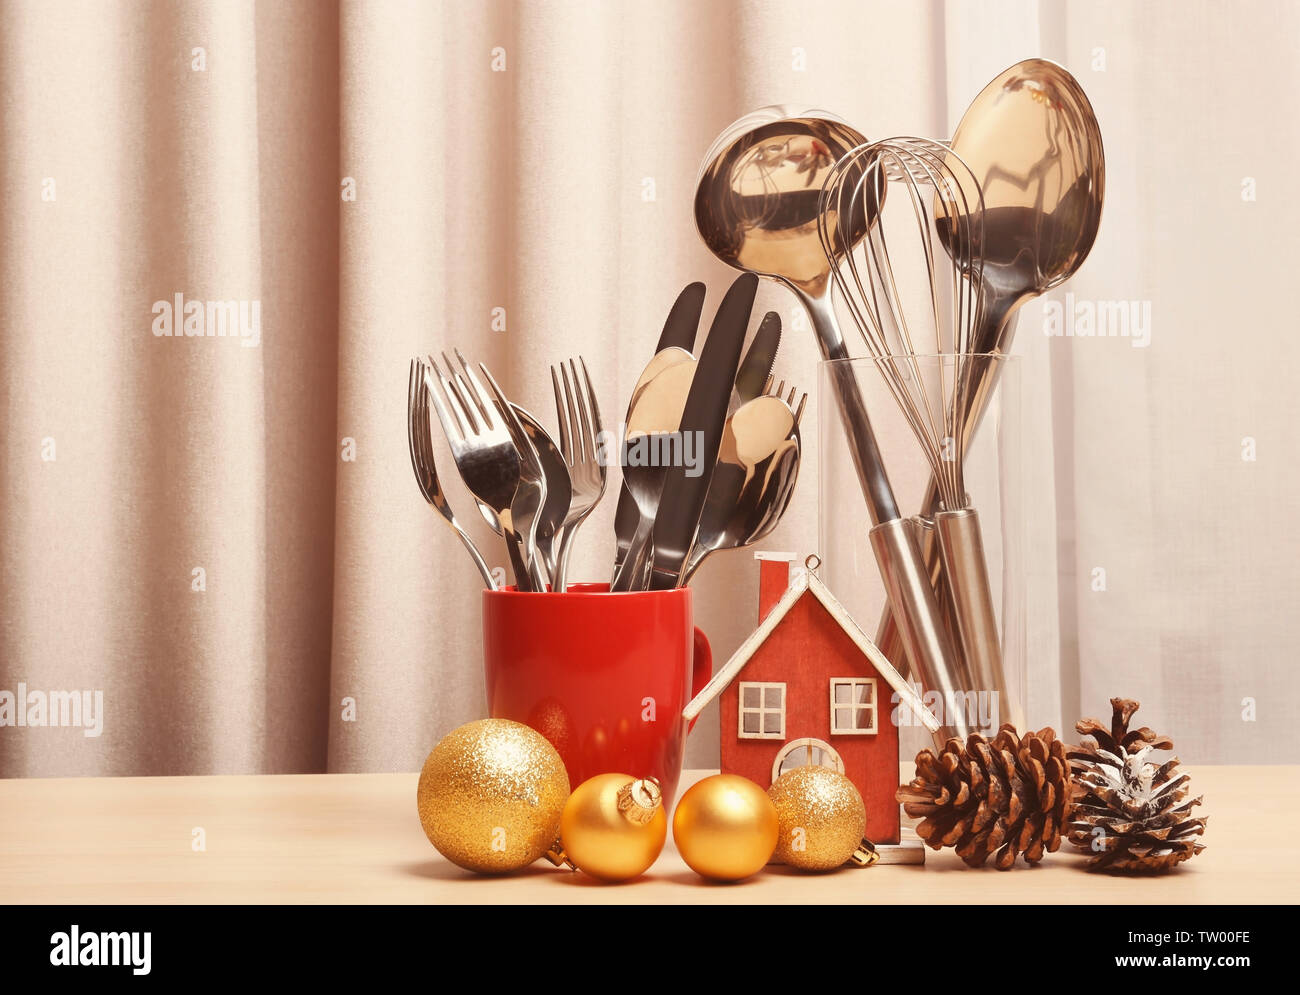 Cooking utensils and Christmas decor on table - Stock Image